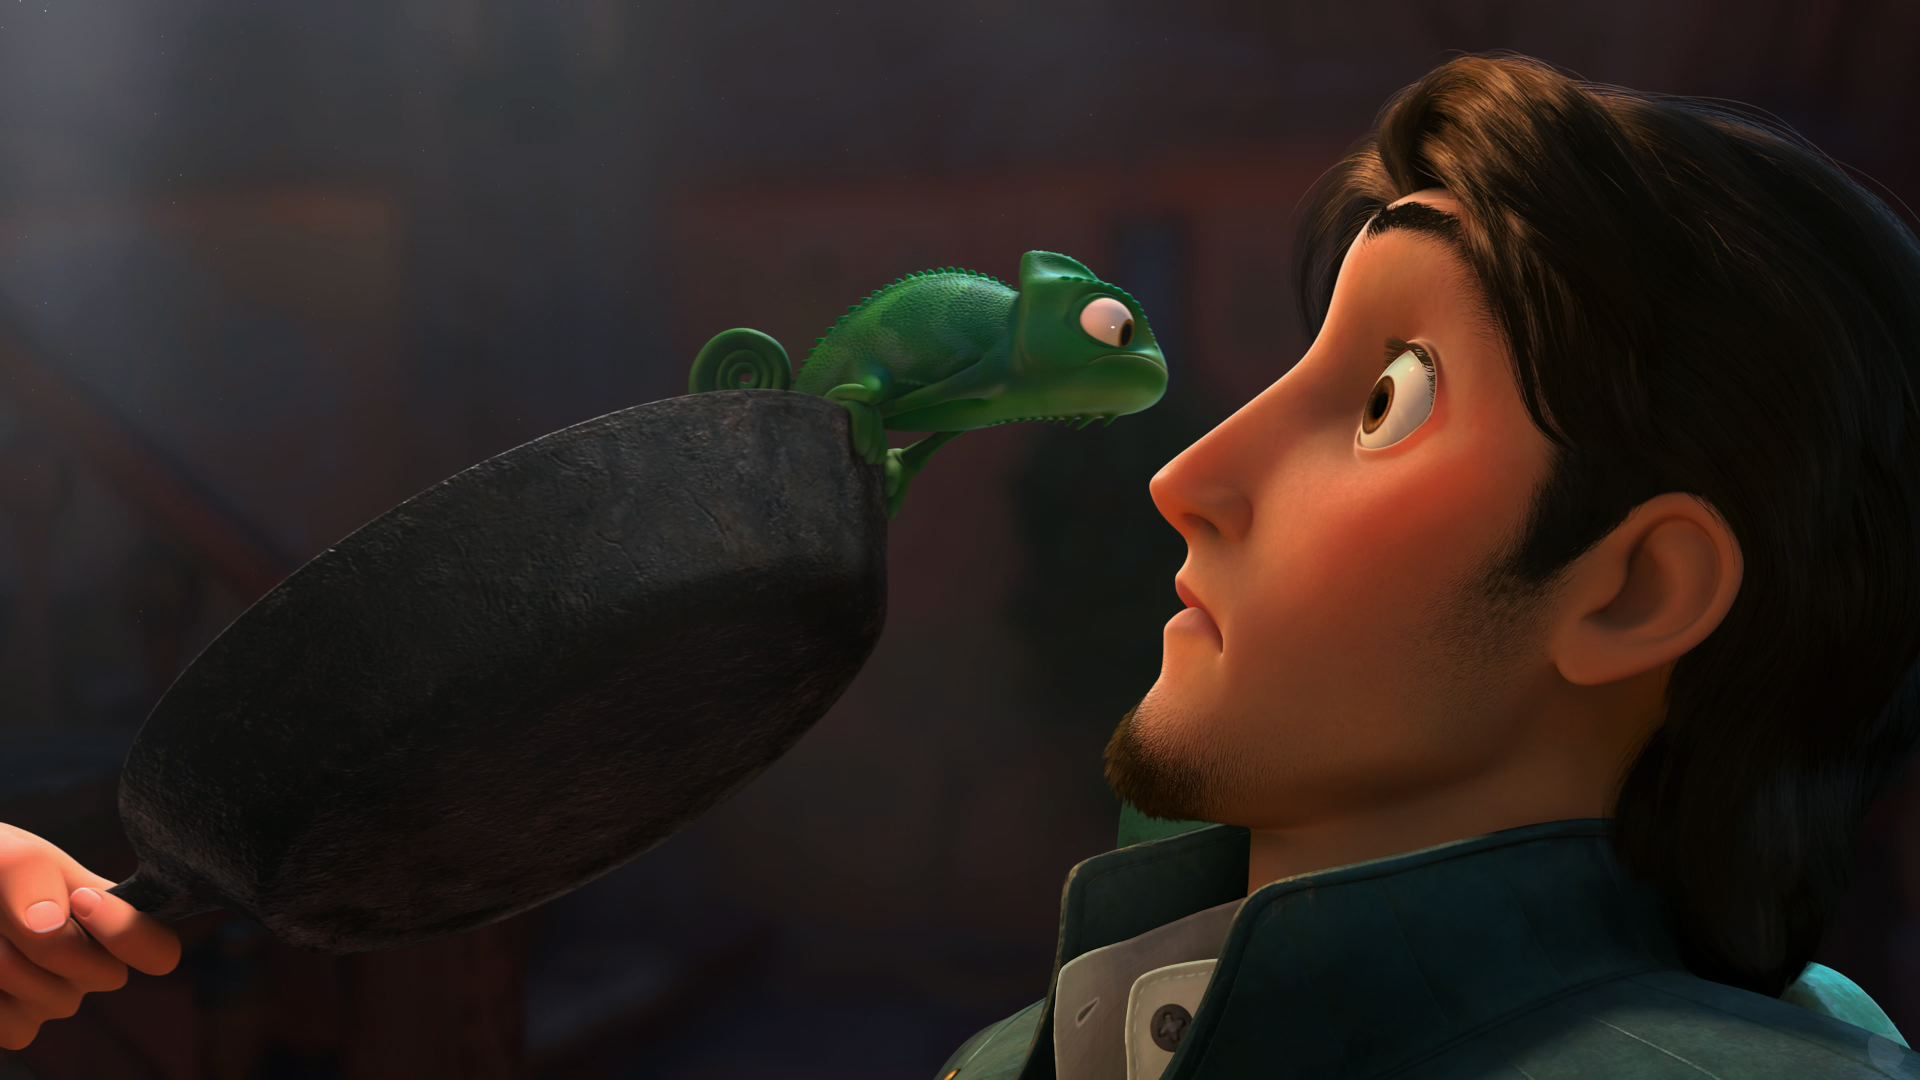 Pascal And Flynn From Tangled Desktop Wallpaper